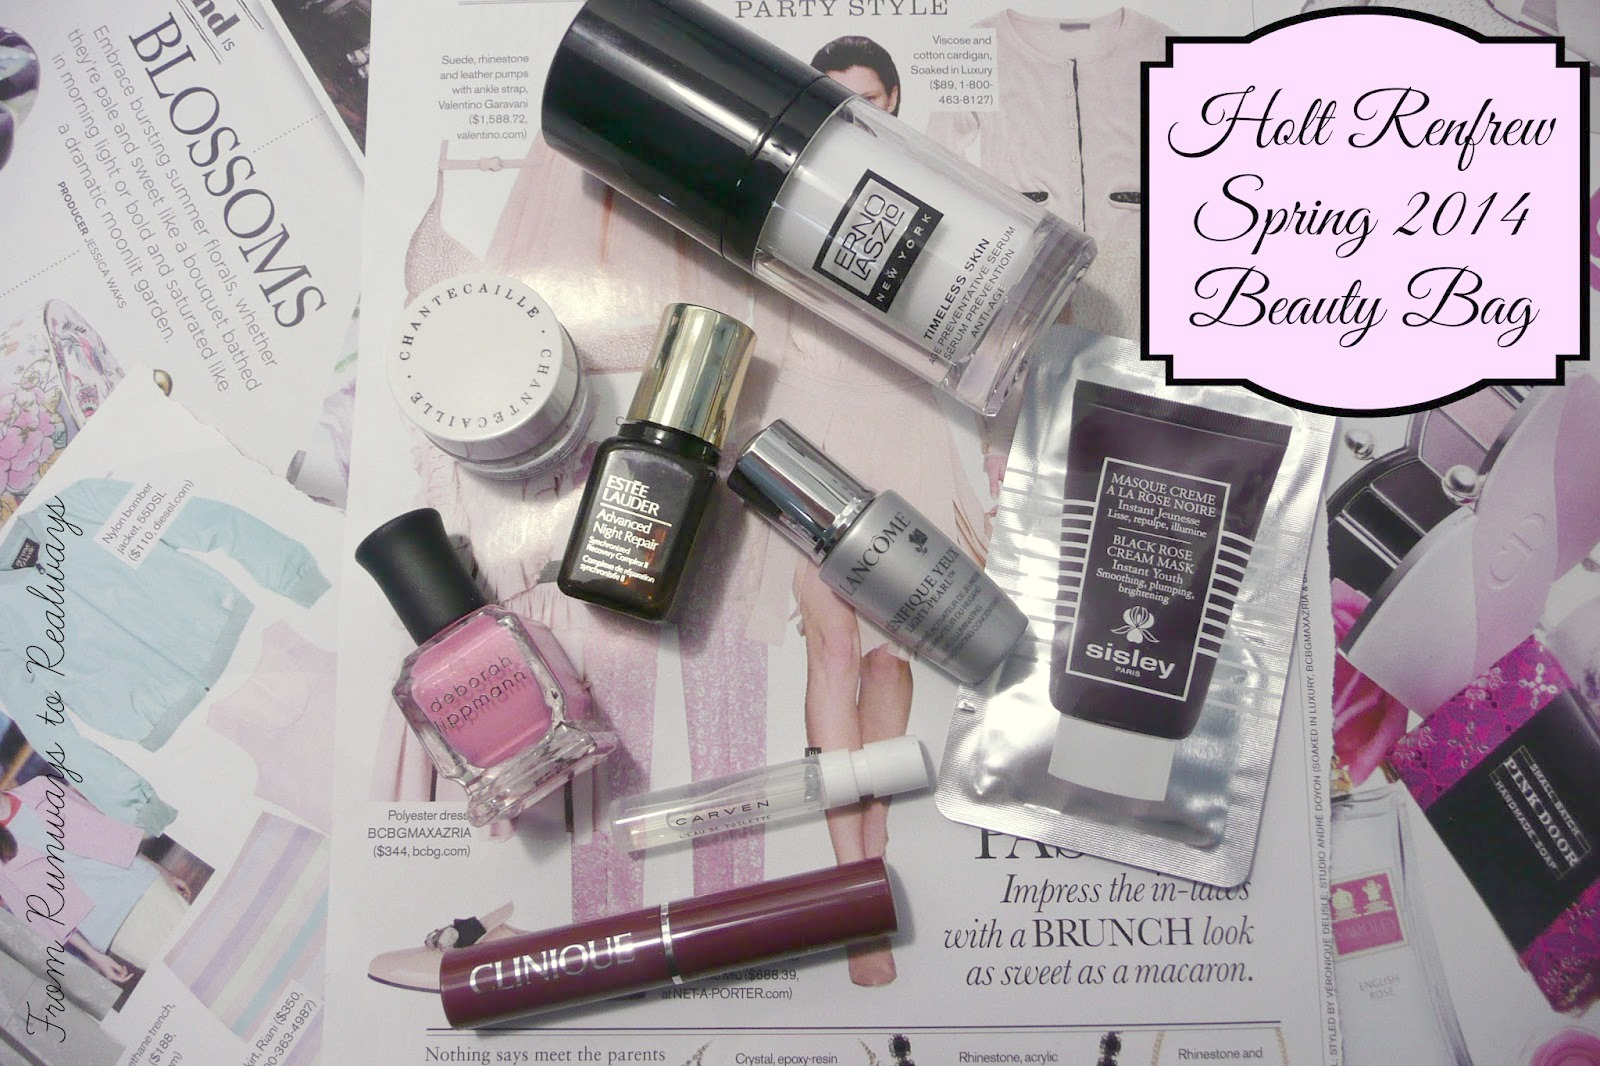 Holt Renfrew Spring Beauty Bag 2014